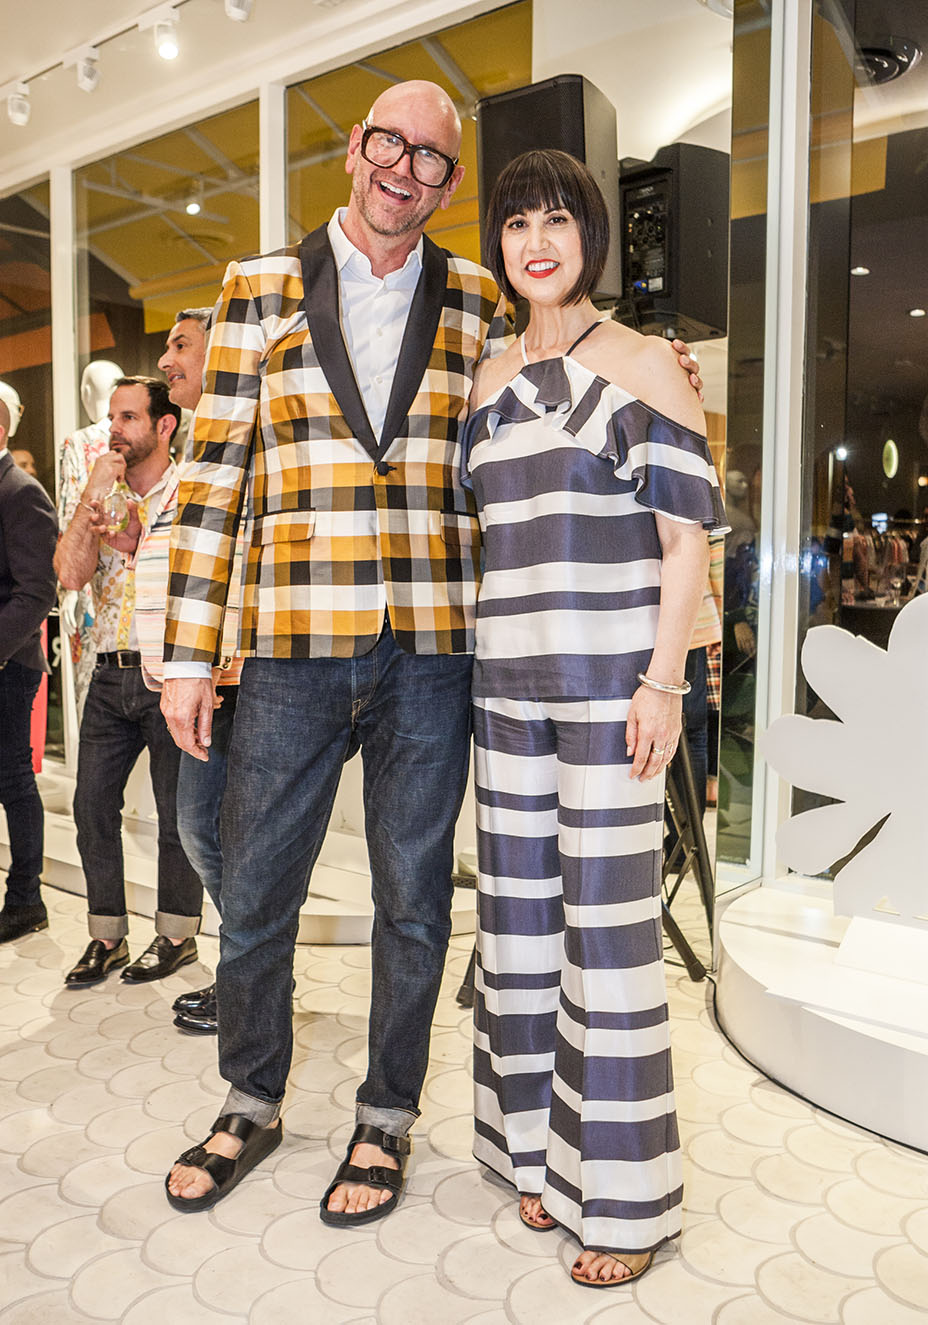 Courtesy of Forest Casey, Trina Turk's store in Larchmont Village Designer Trina Turk and her husband, Mr. Turk designer Jonathan Skow, at the opening of the Larchmont store.